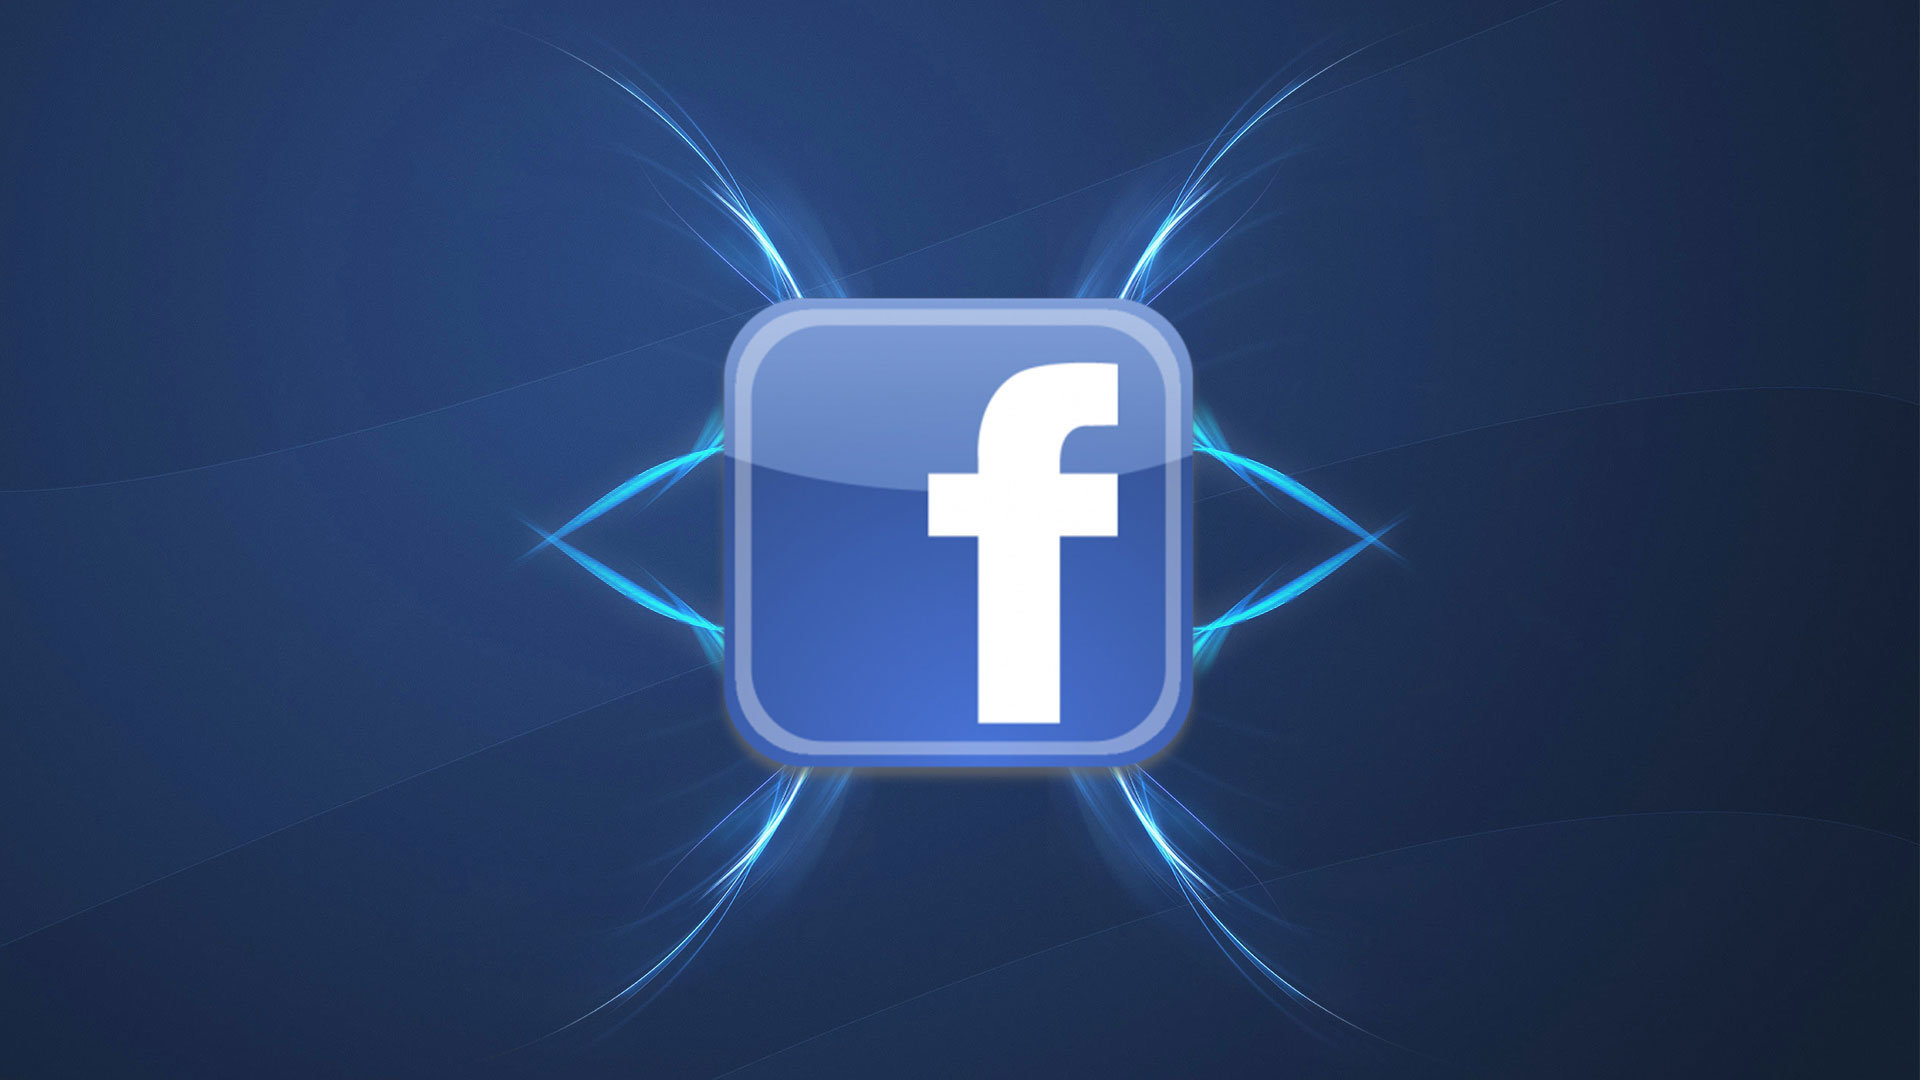 Free Facebook High Quality Wallpaper Id69993 For Full Hd